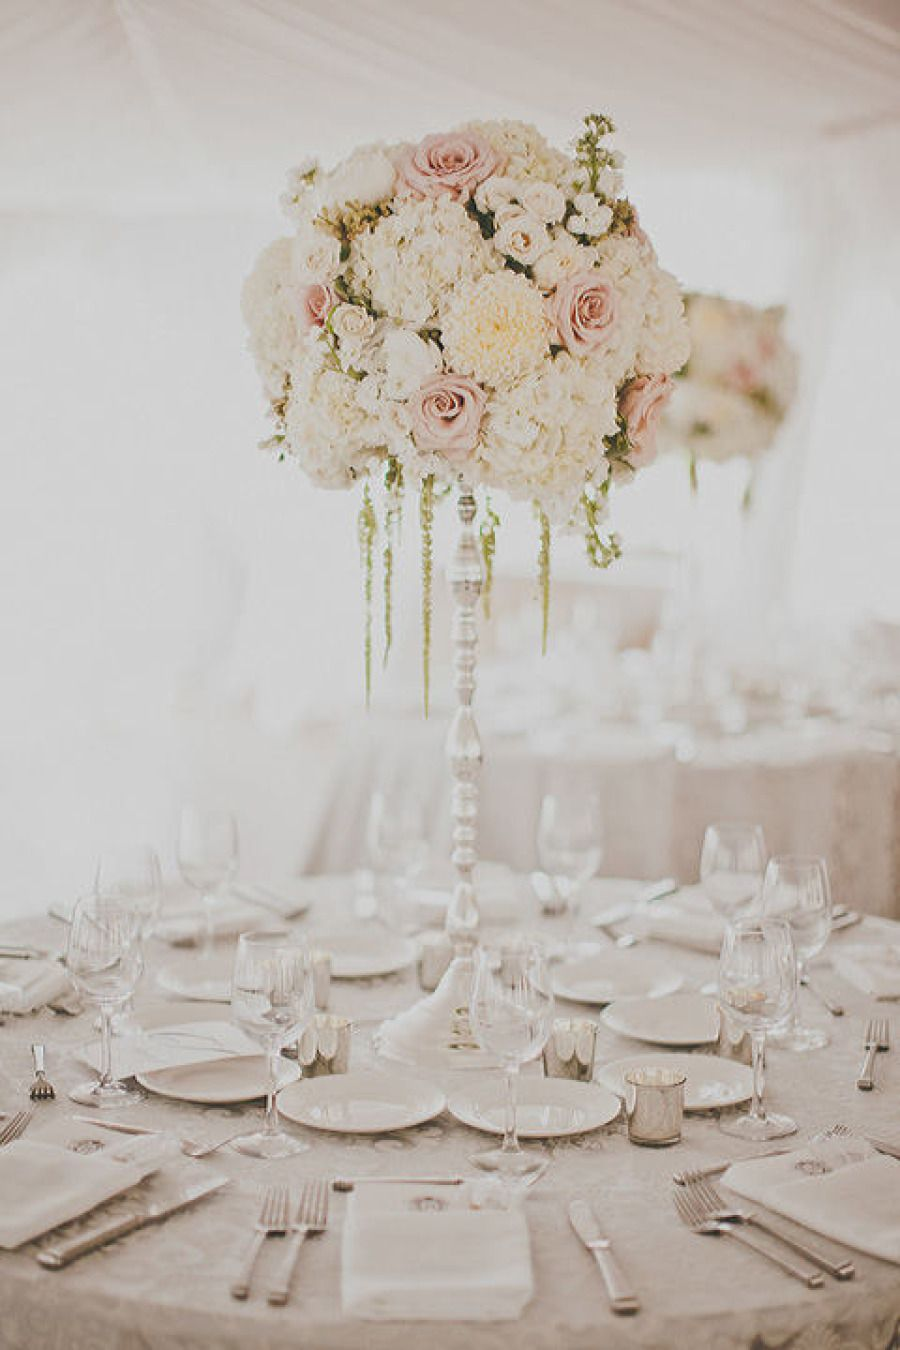 29 Jaw-Droppingly Beautiful Wedding Centerpieces | Pinterest ...